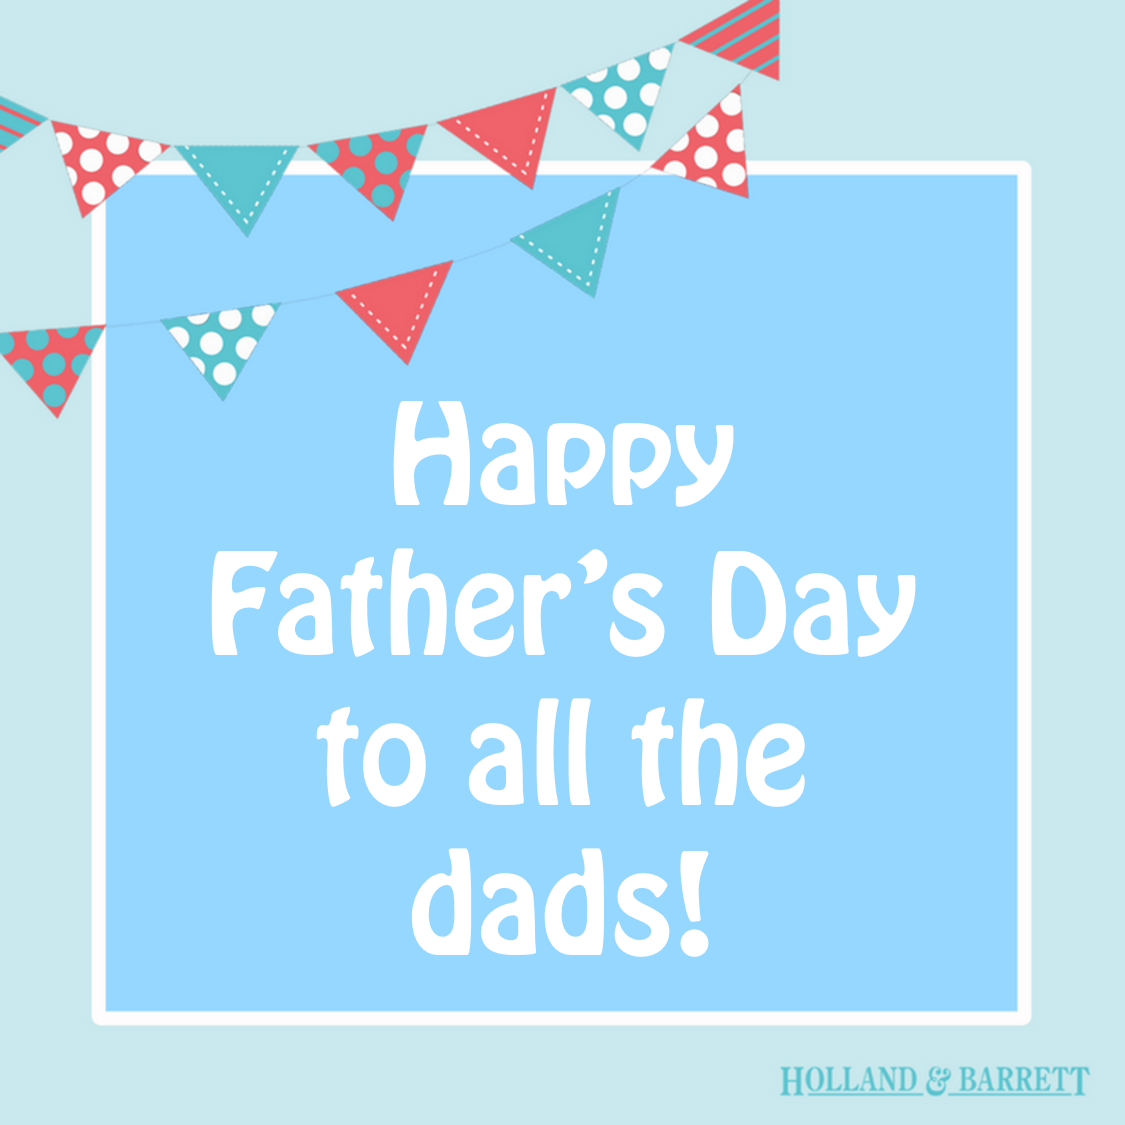 Happy #FathersDay everyone! How are you celebrating with your dad today? https://t.co/lcpMSRF6DS